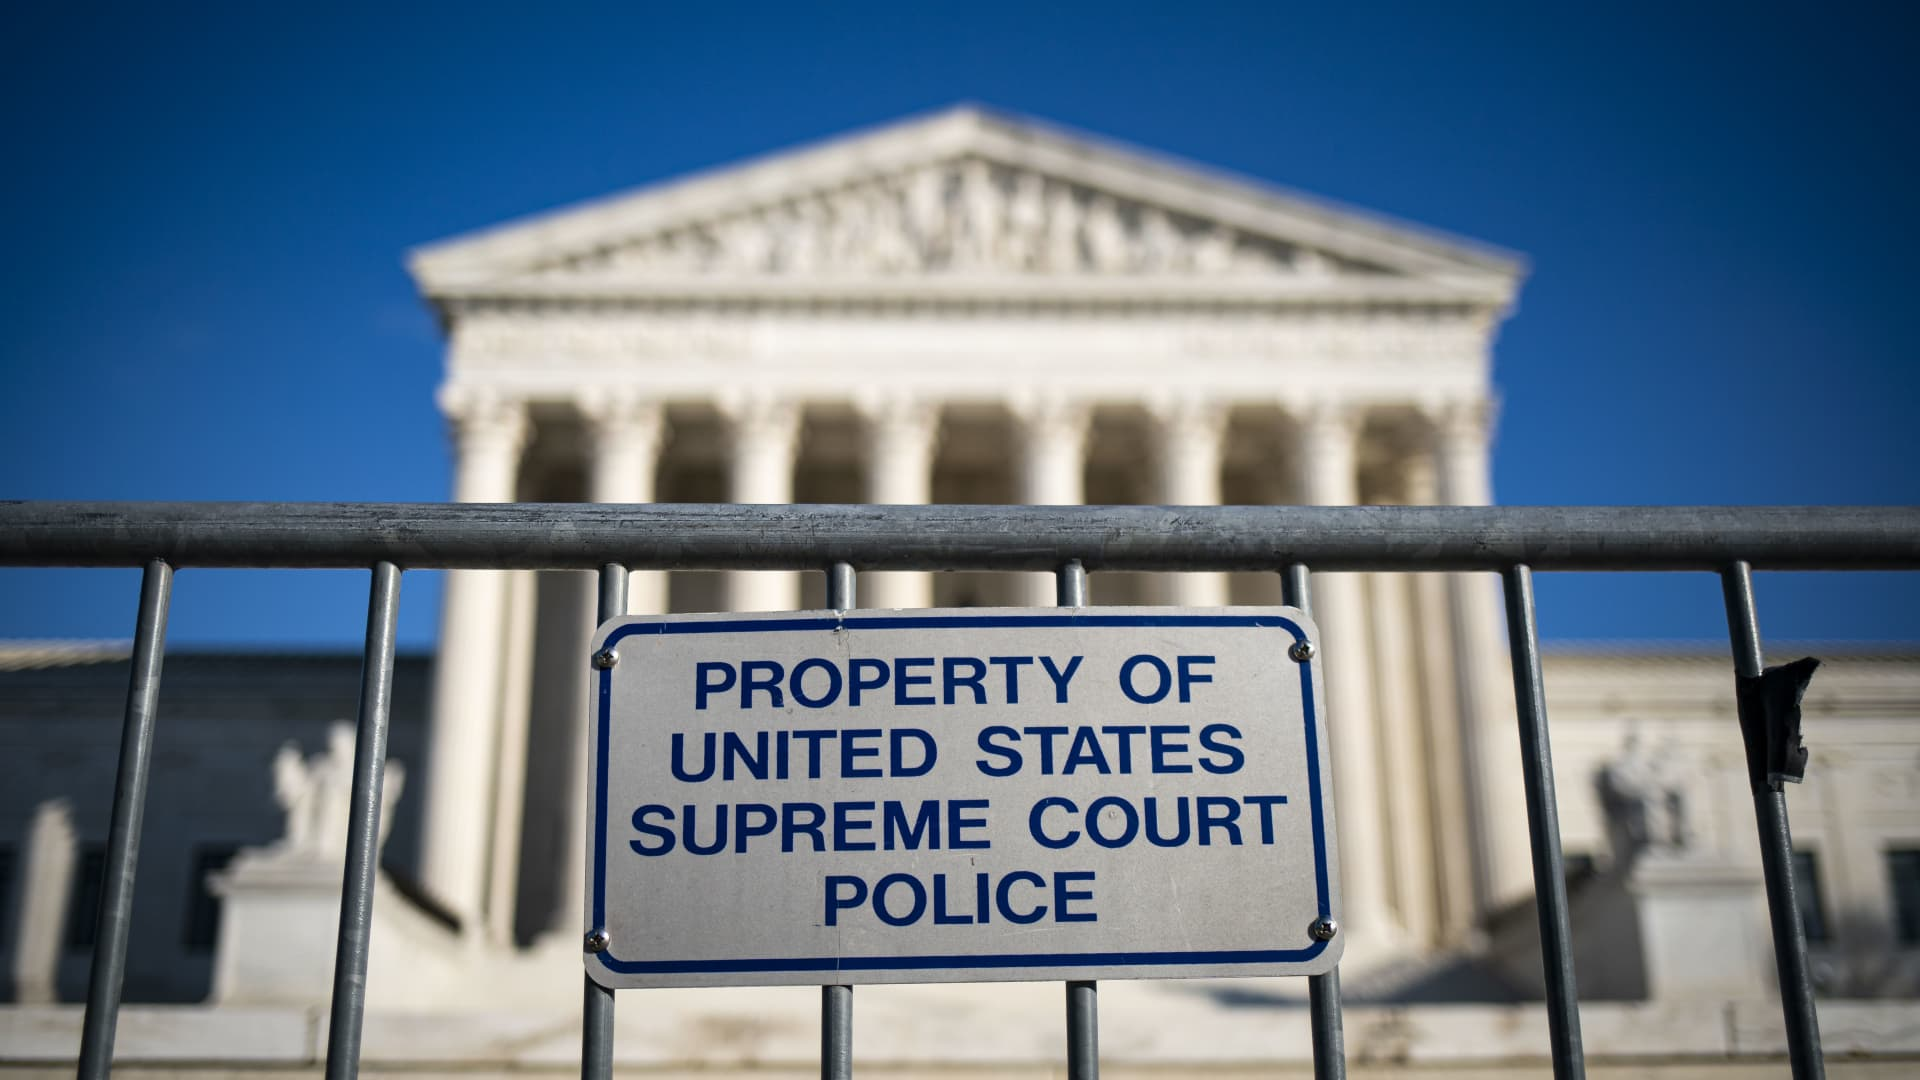 A police barricade in front of the U.S. Supreme Court in Washington, D.C., on Monday, Dec. 7, 2020.